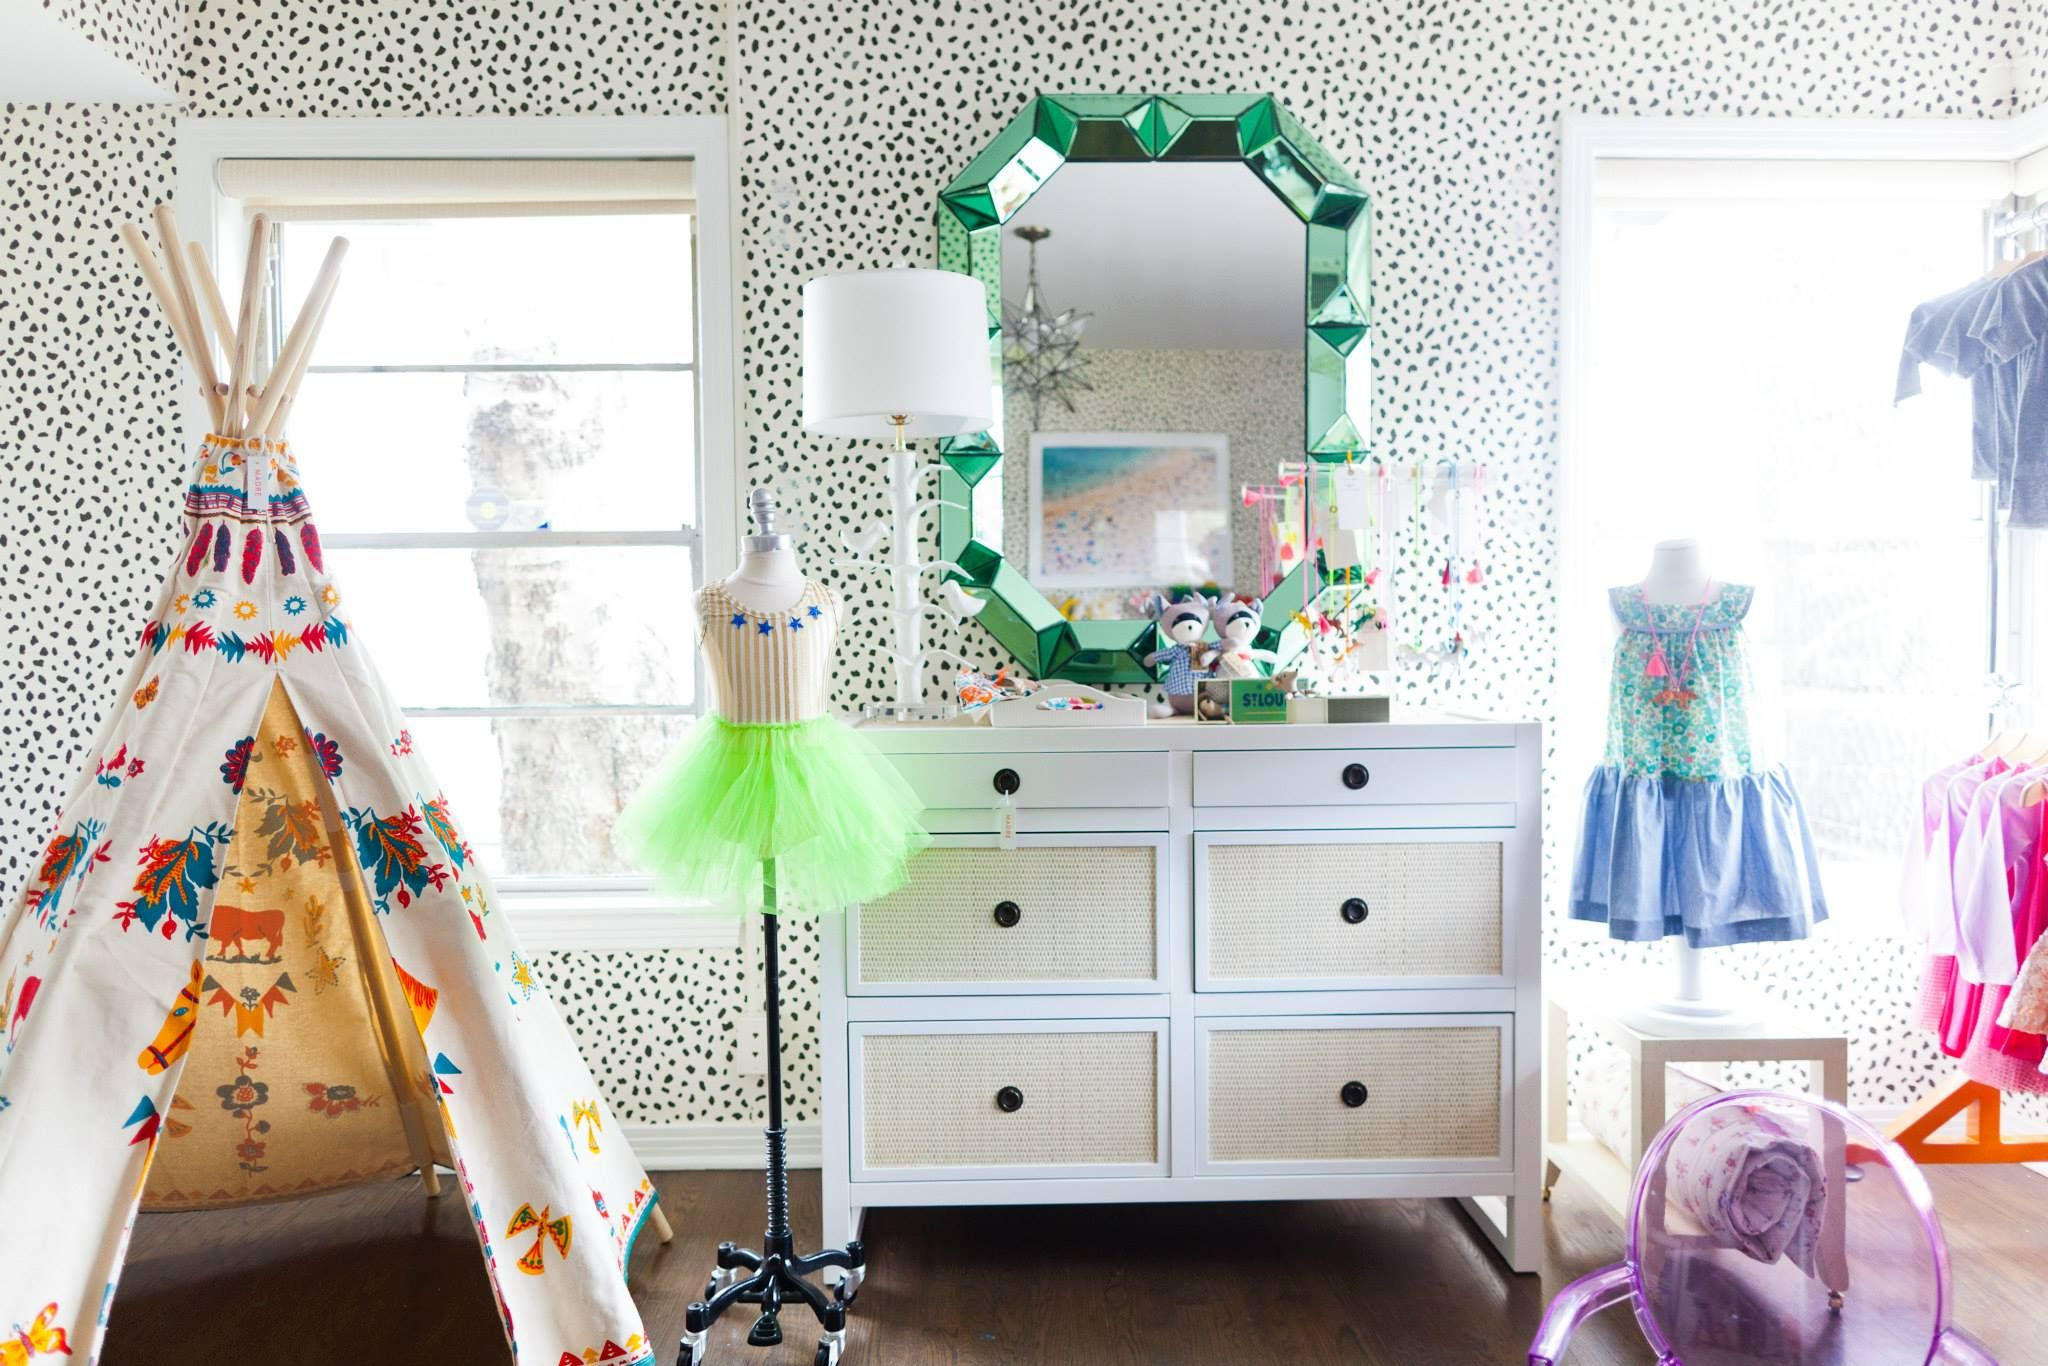 Little bean shop bungalow romano mirror and mallet drawer